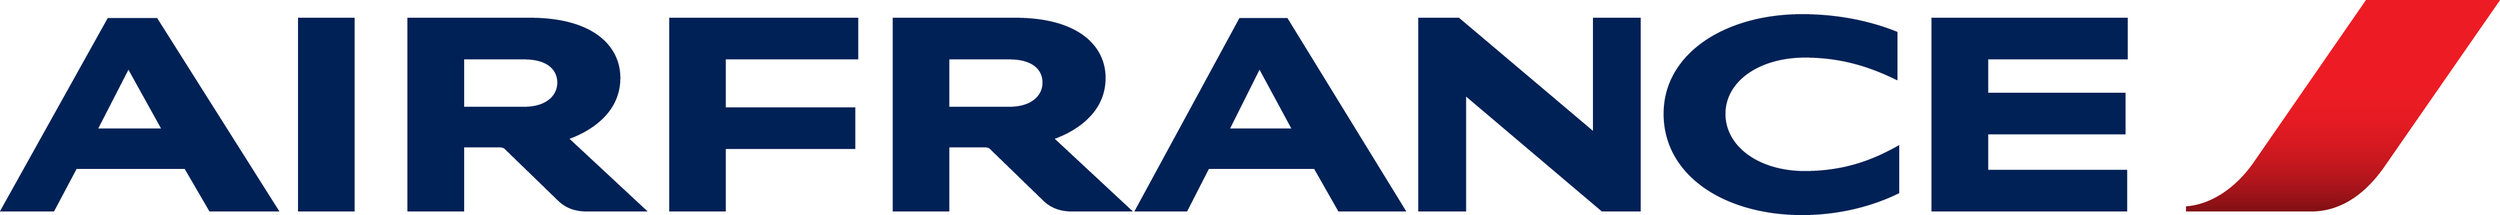 AF-logo_blue-on-white_no-Skyteam.jpg